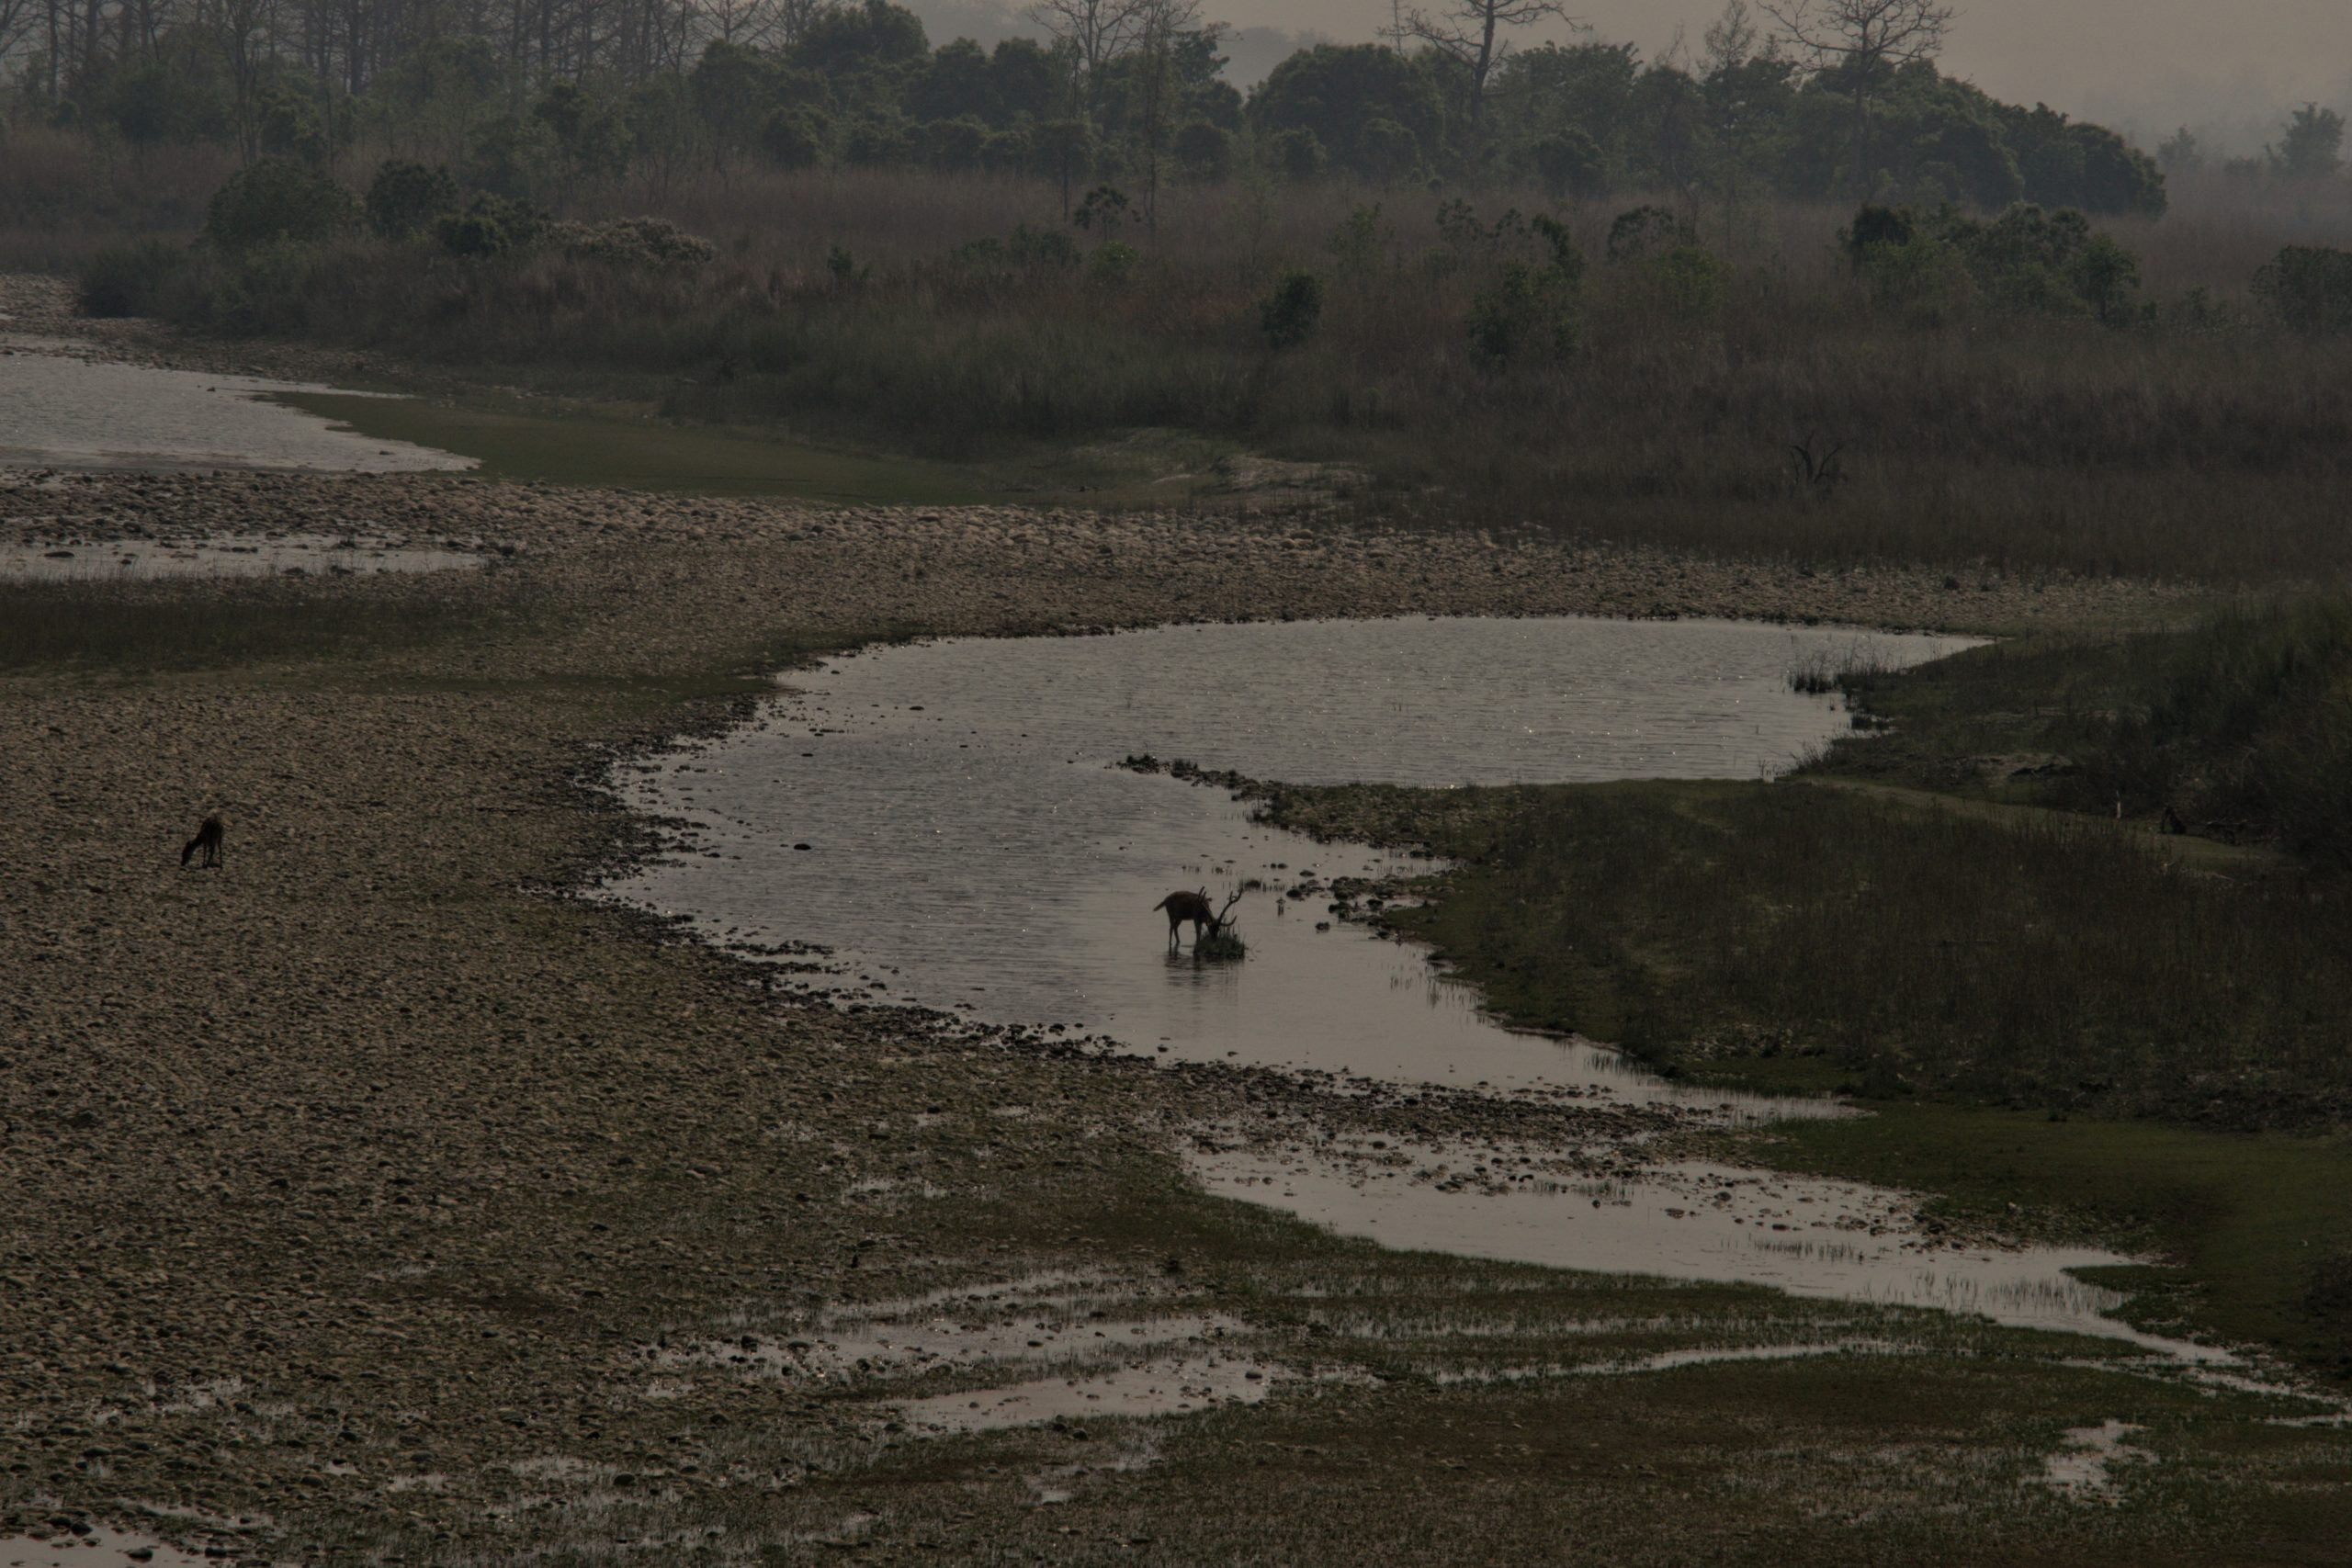 Low water levels in the Geruwa river in Bardia National Park, Nepal